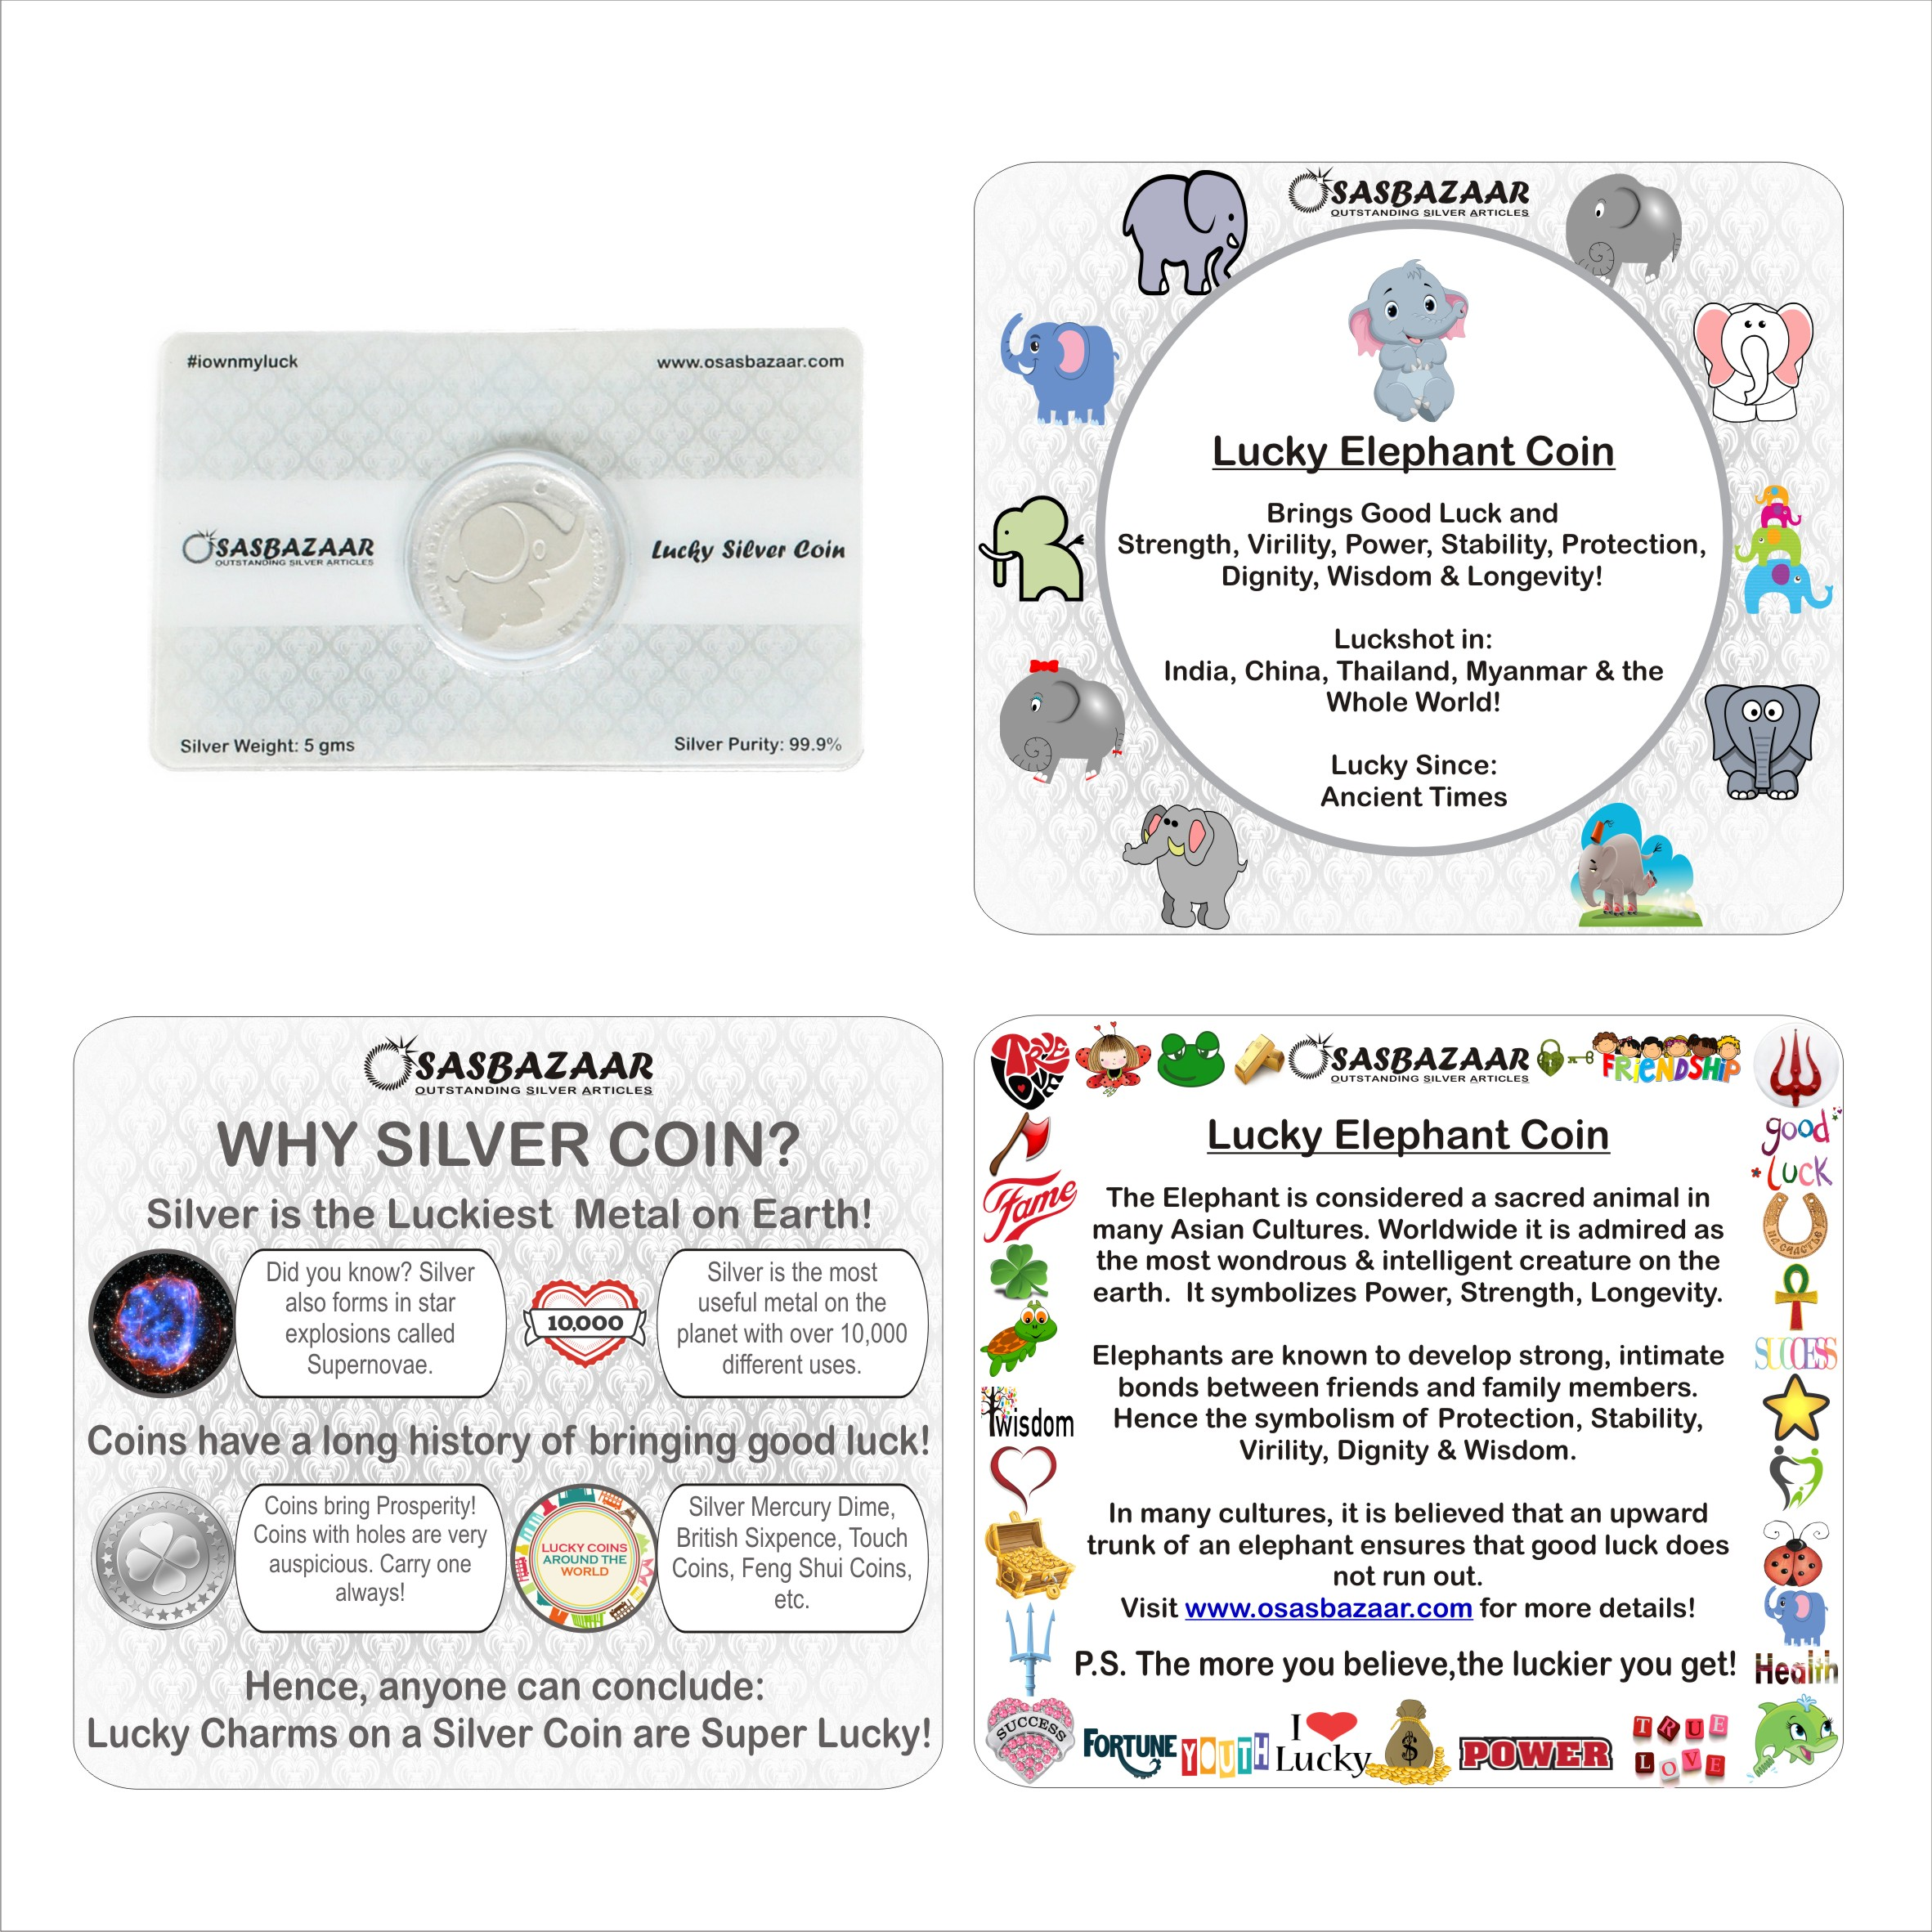 Why is Silver Elephant Coin Lucky?